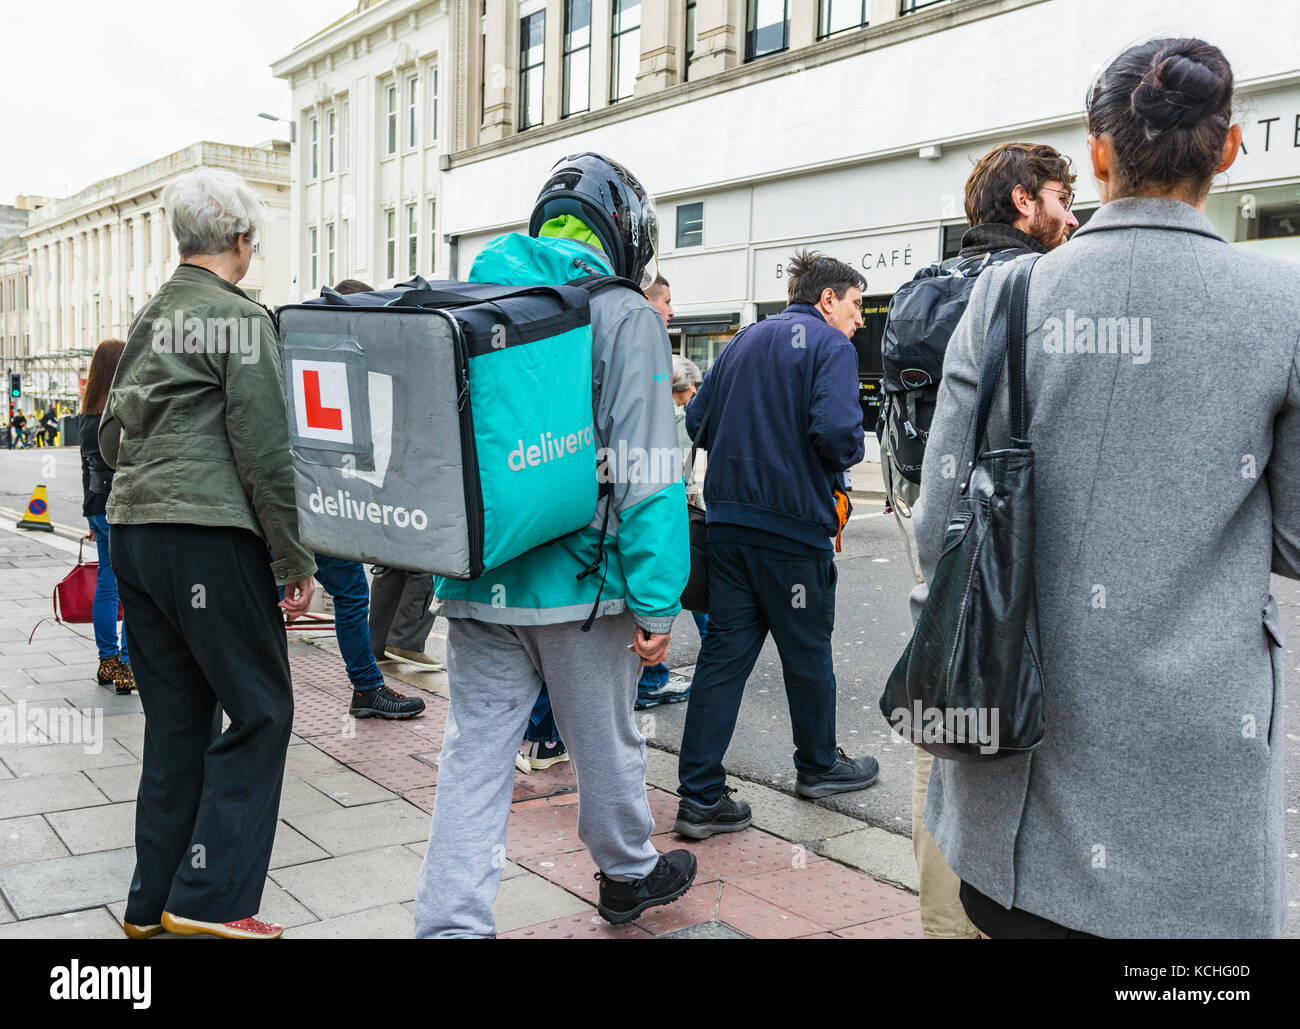 Deliveroo employee on food with a Deliveroo backpack in Brighton, East Sussex, England, UK. - Stock Image